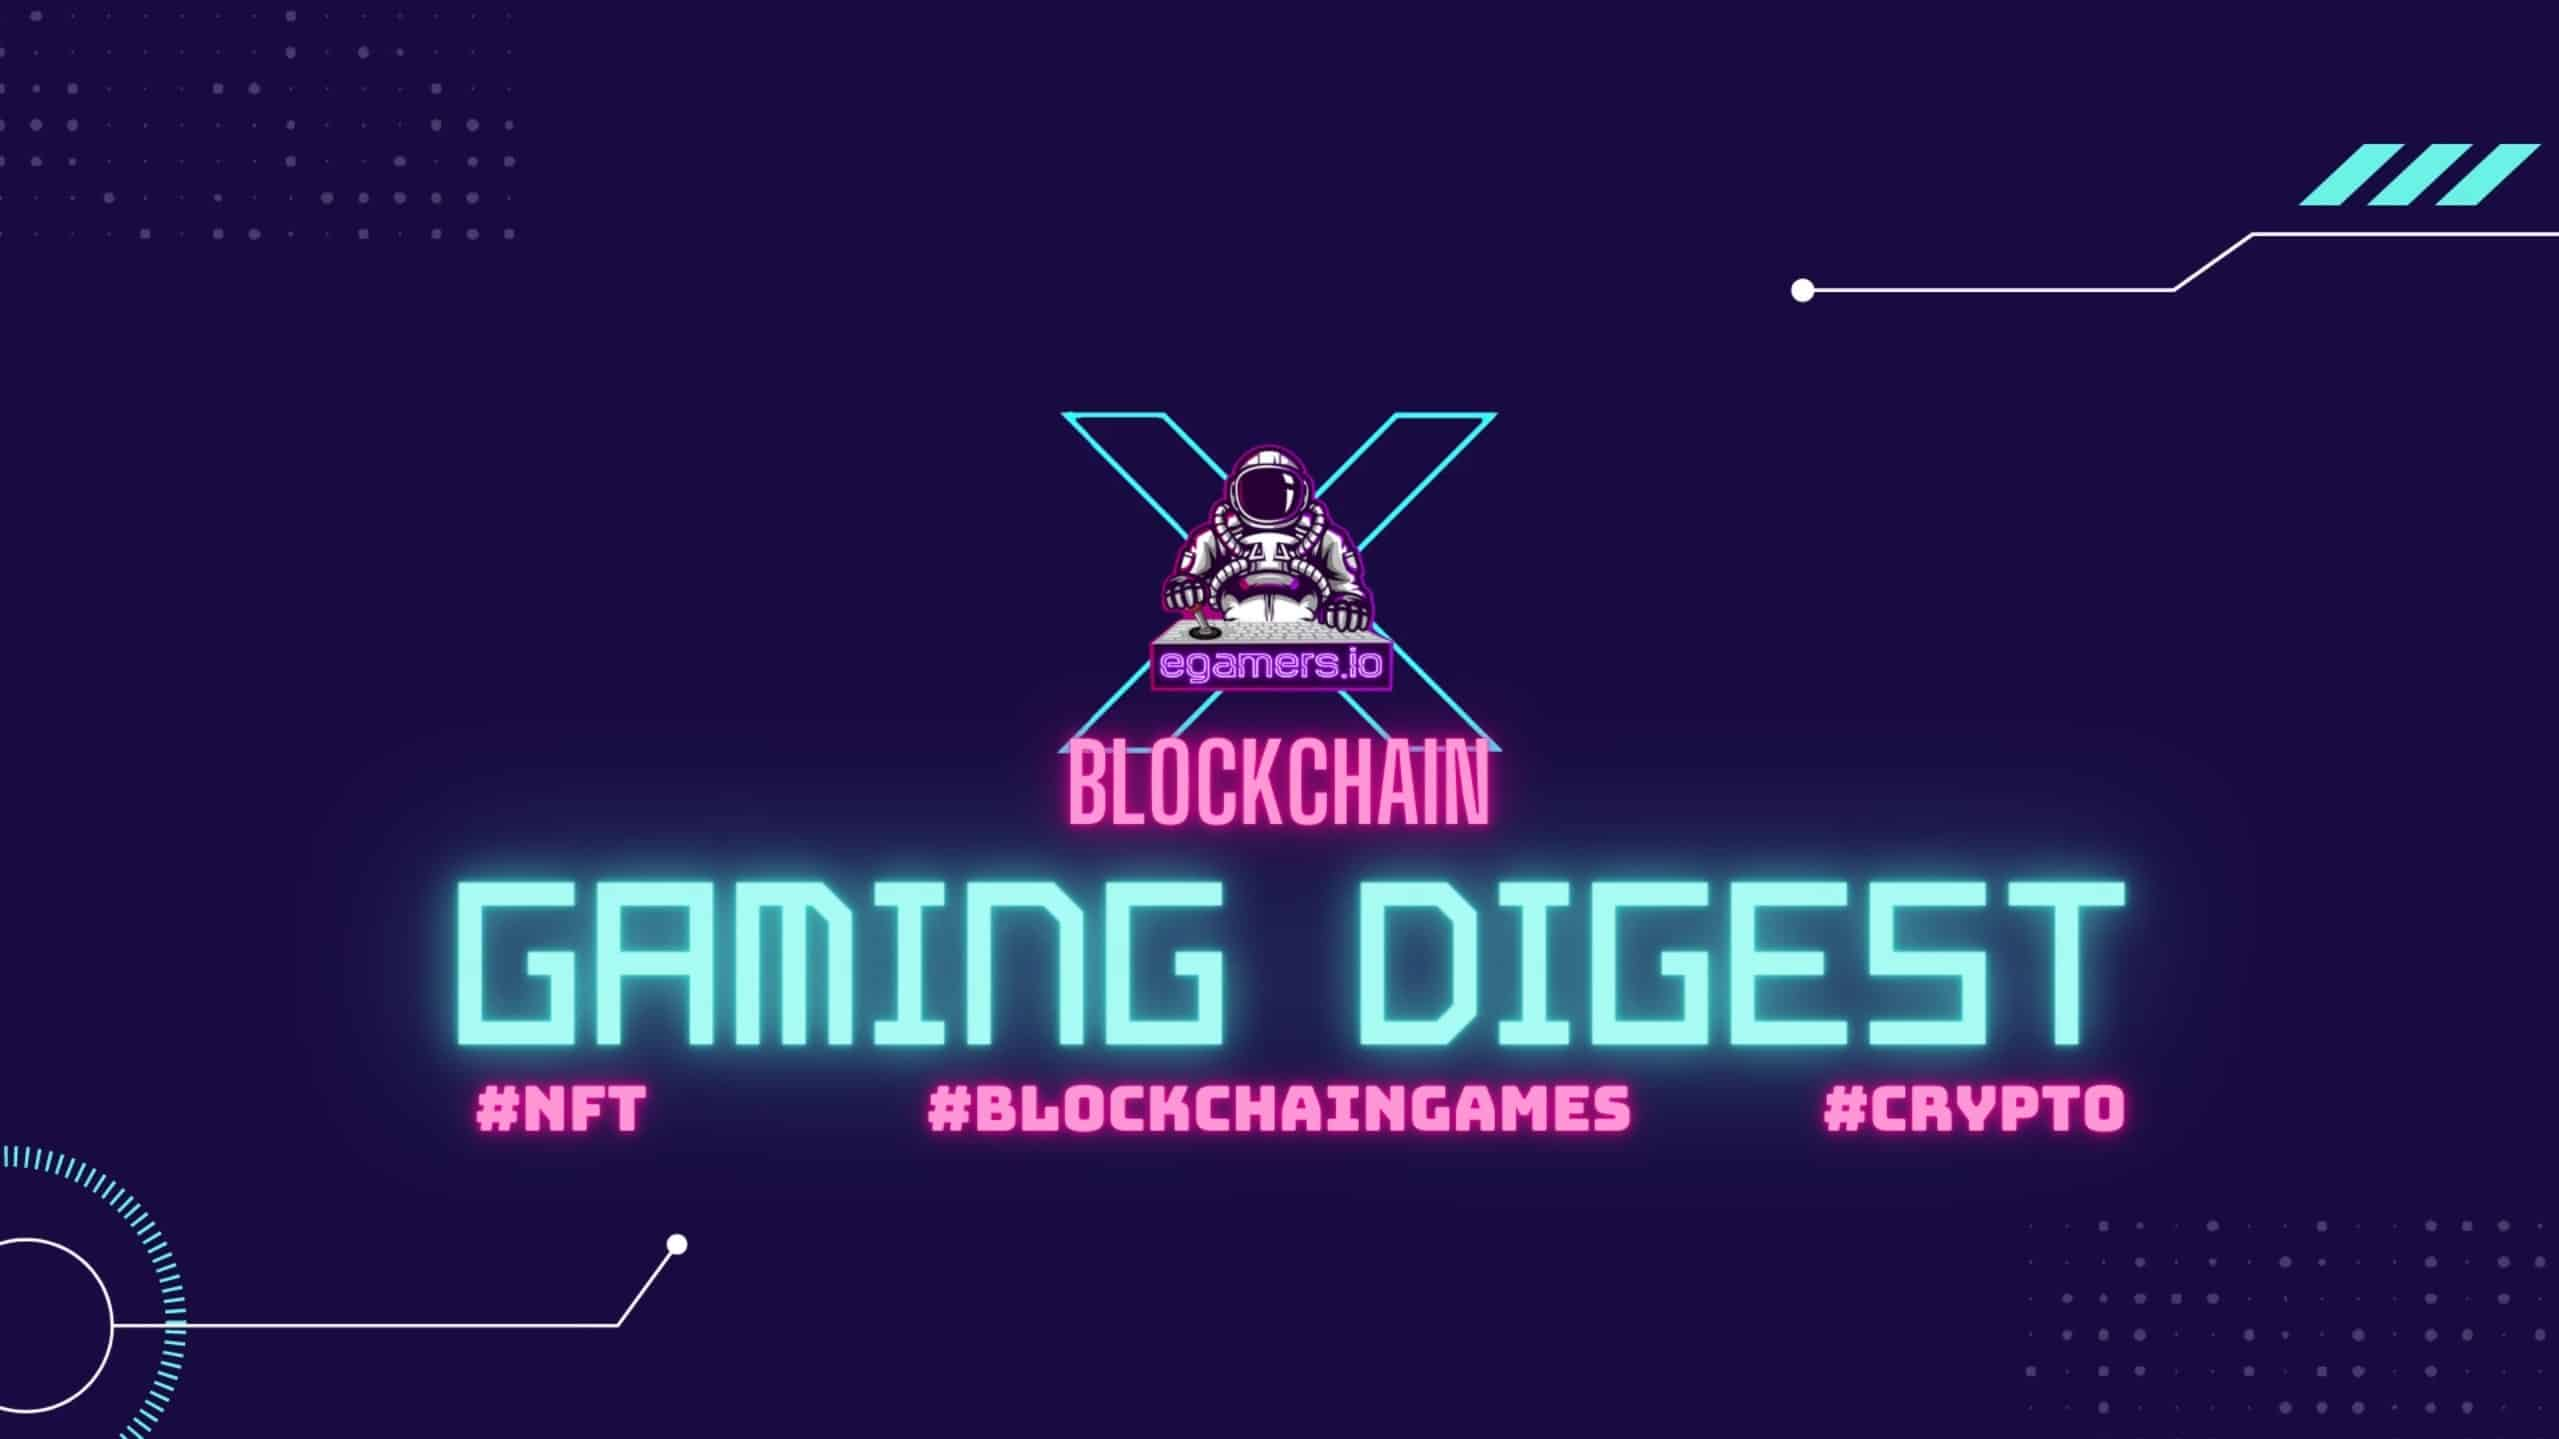 Blockchain Gaming Digest